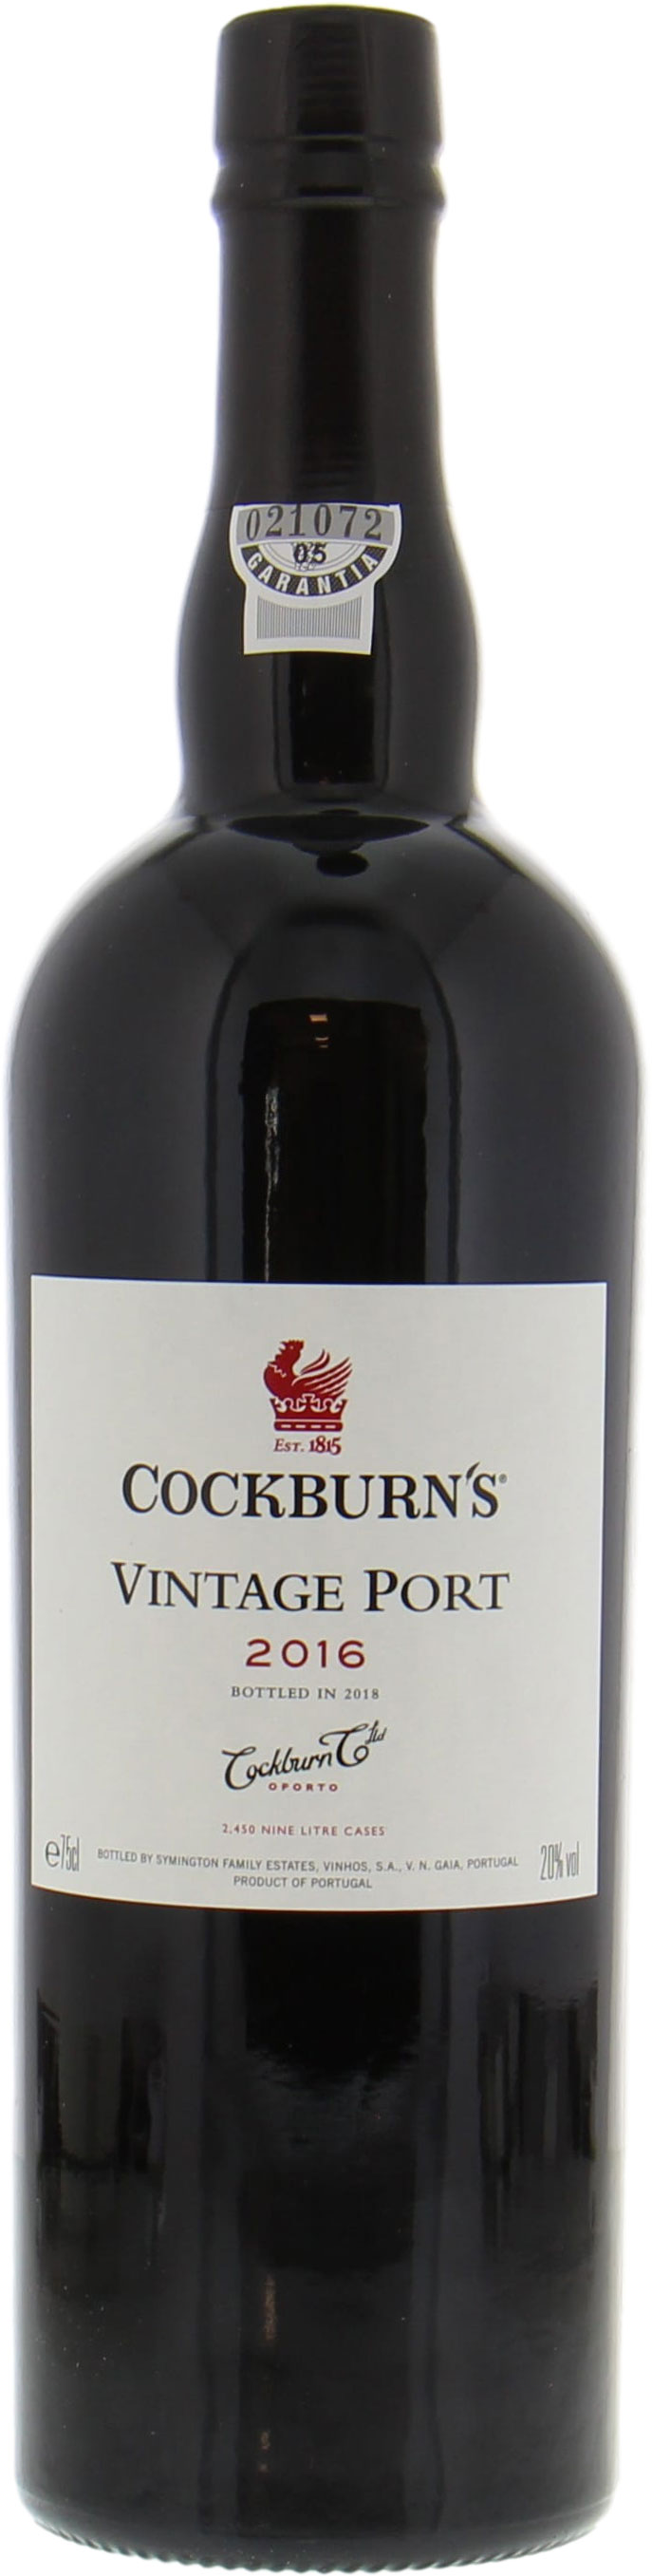 Cockburn - Vintage Port 2016